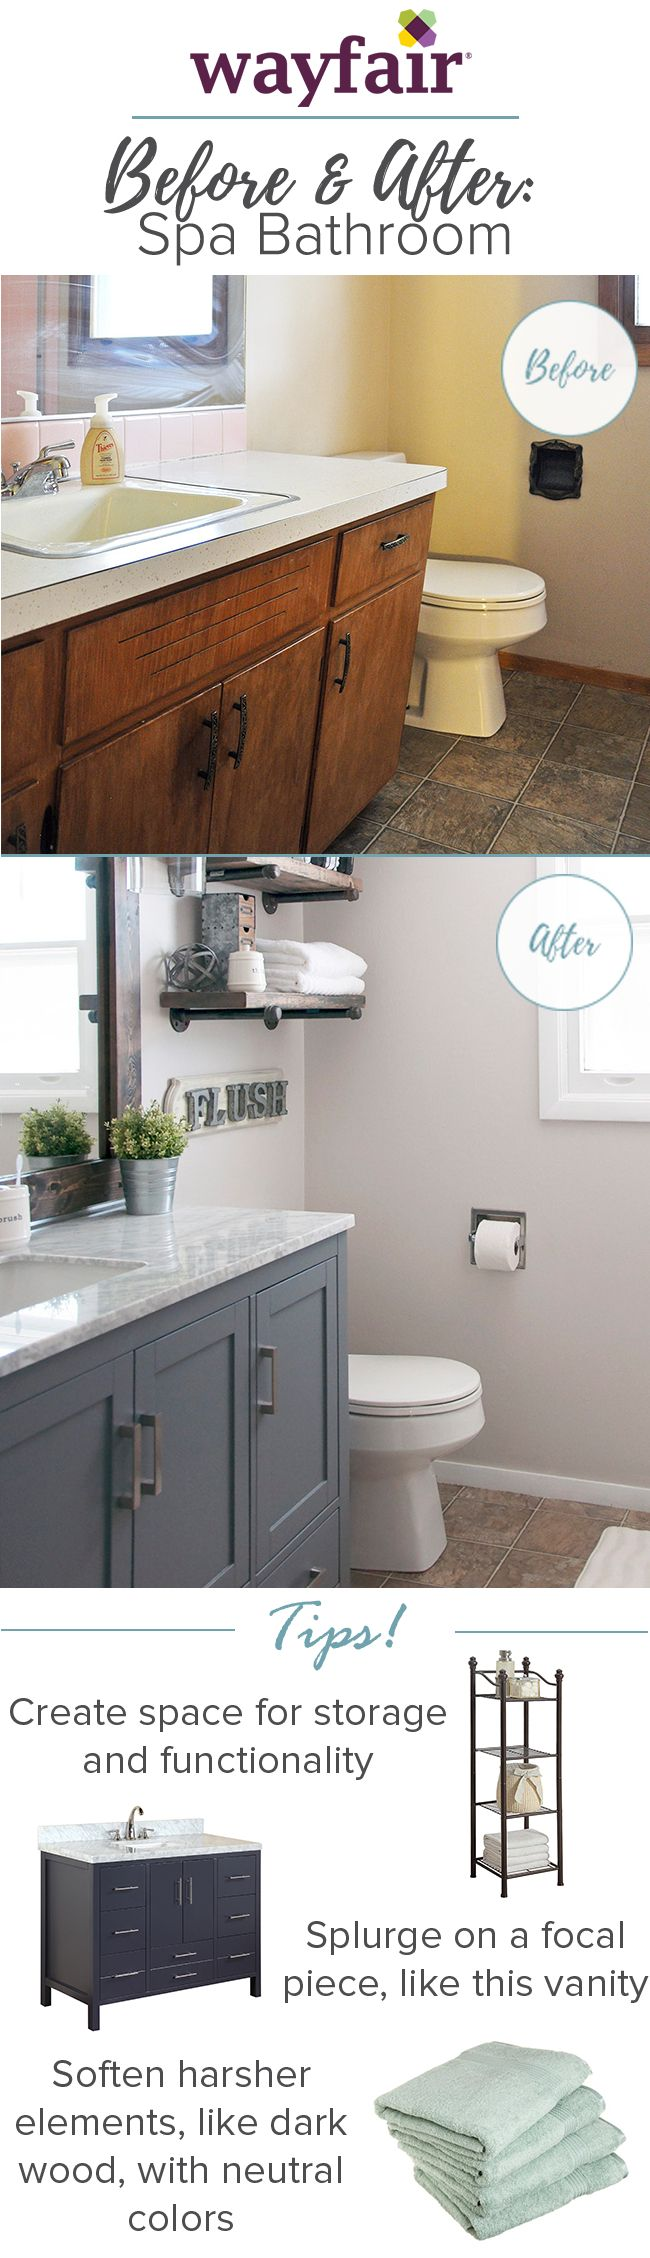 Before & After: Pink and Outdated to Industrial Farmhouse See how this pink tiled, crayon-scribbled bathroom became a farmhouse haven without breaking the bank!